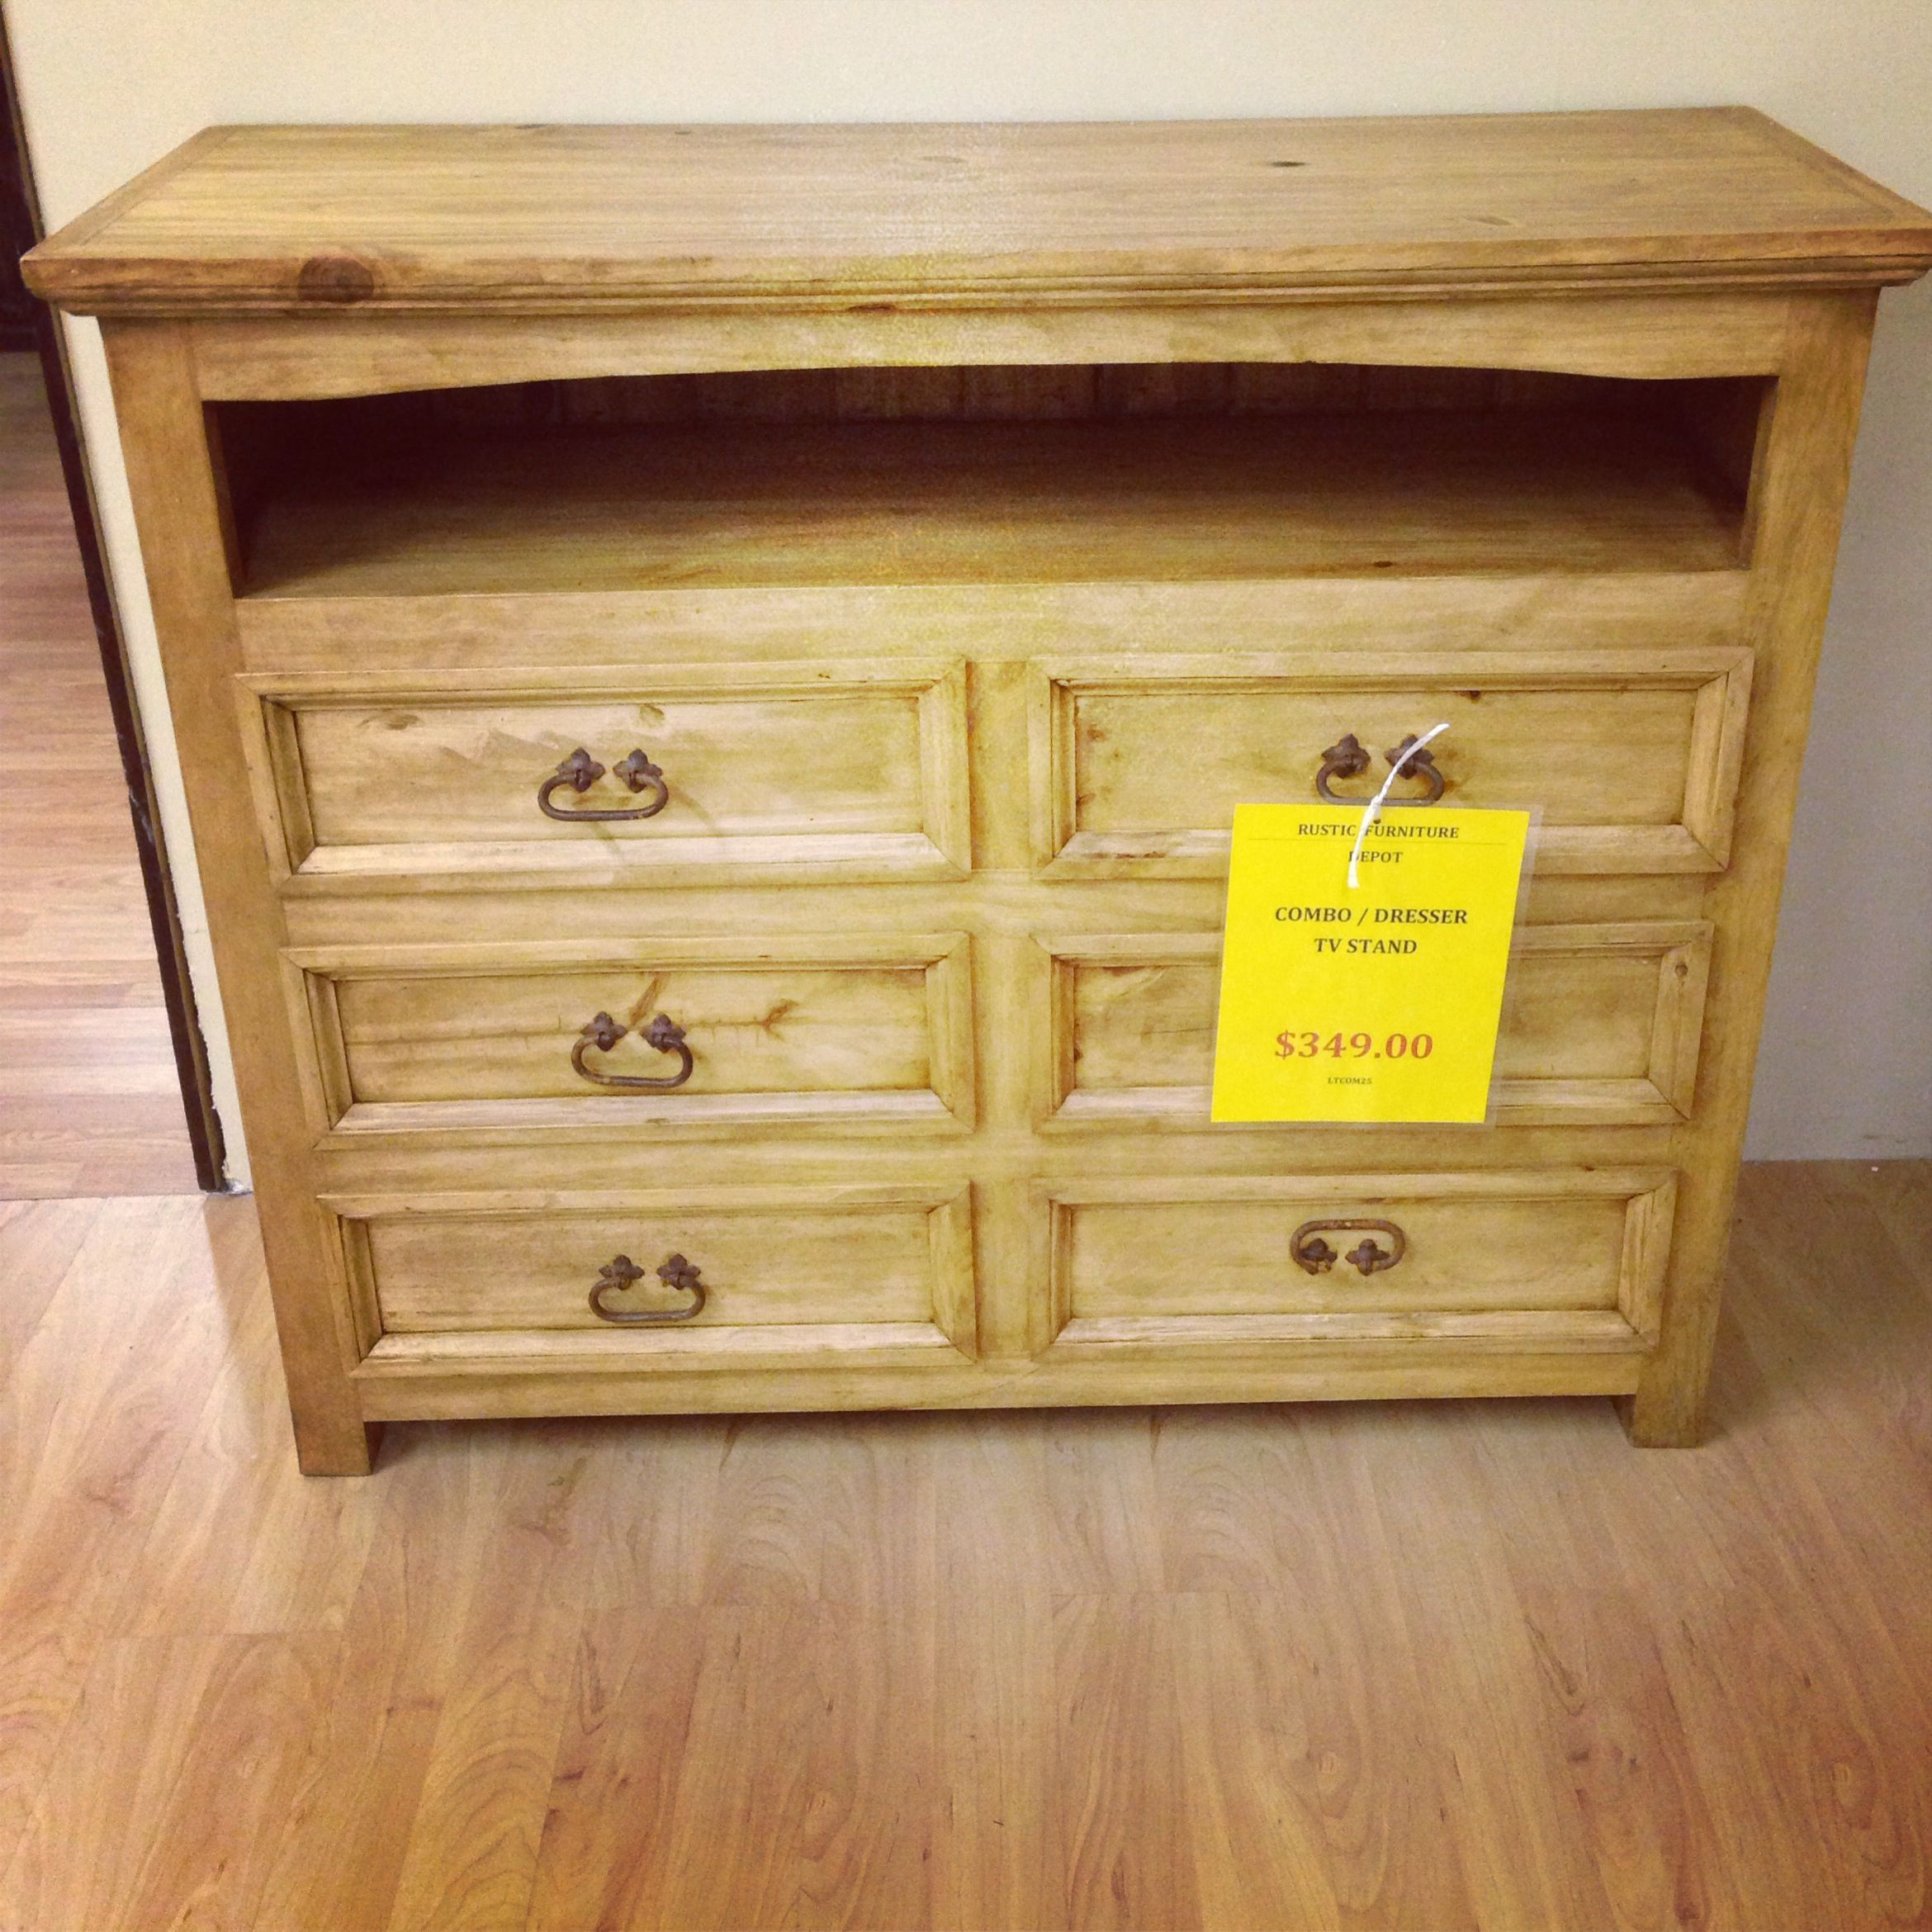 rustic furniture depot wwwrusticfurnituredepotcom tv stand